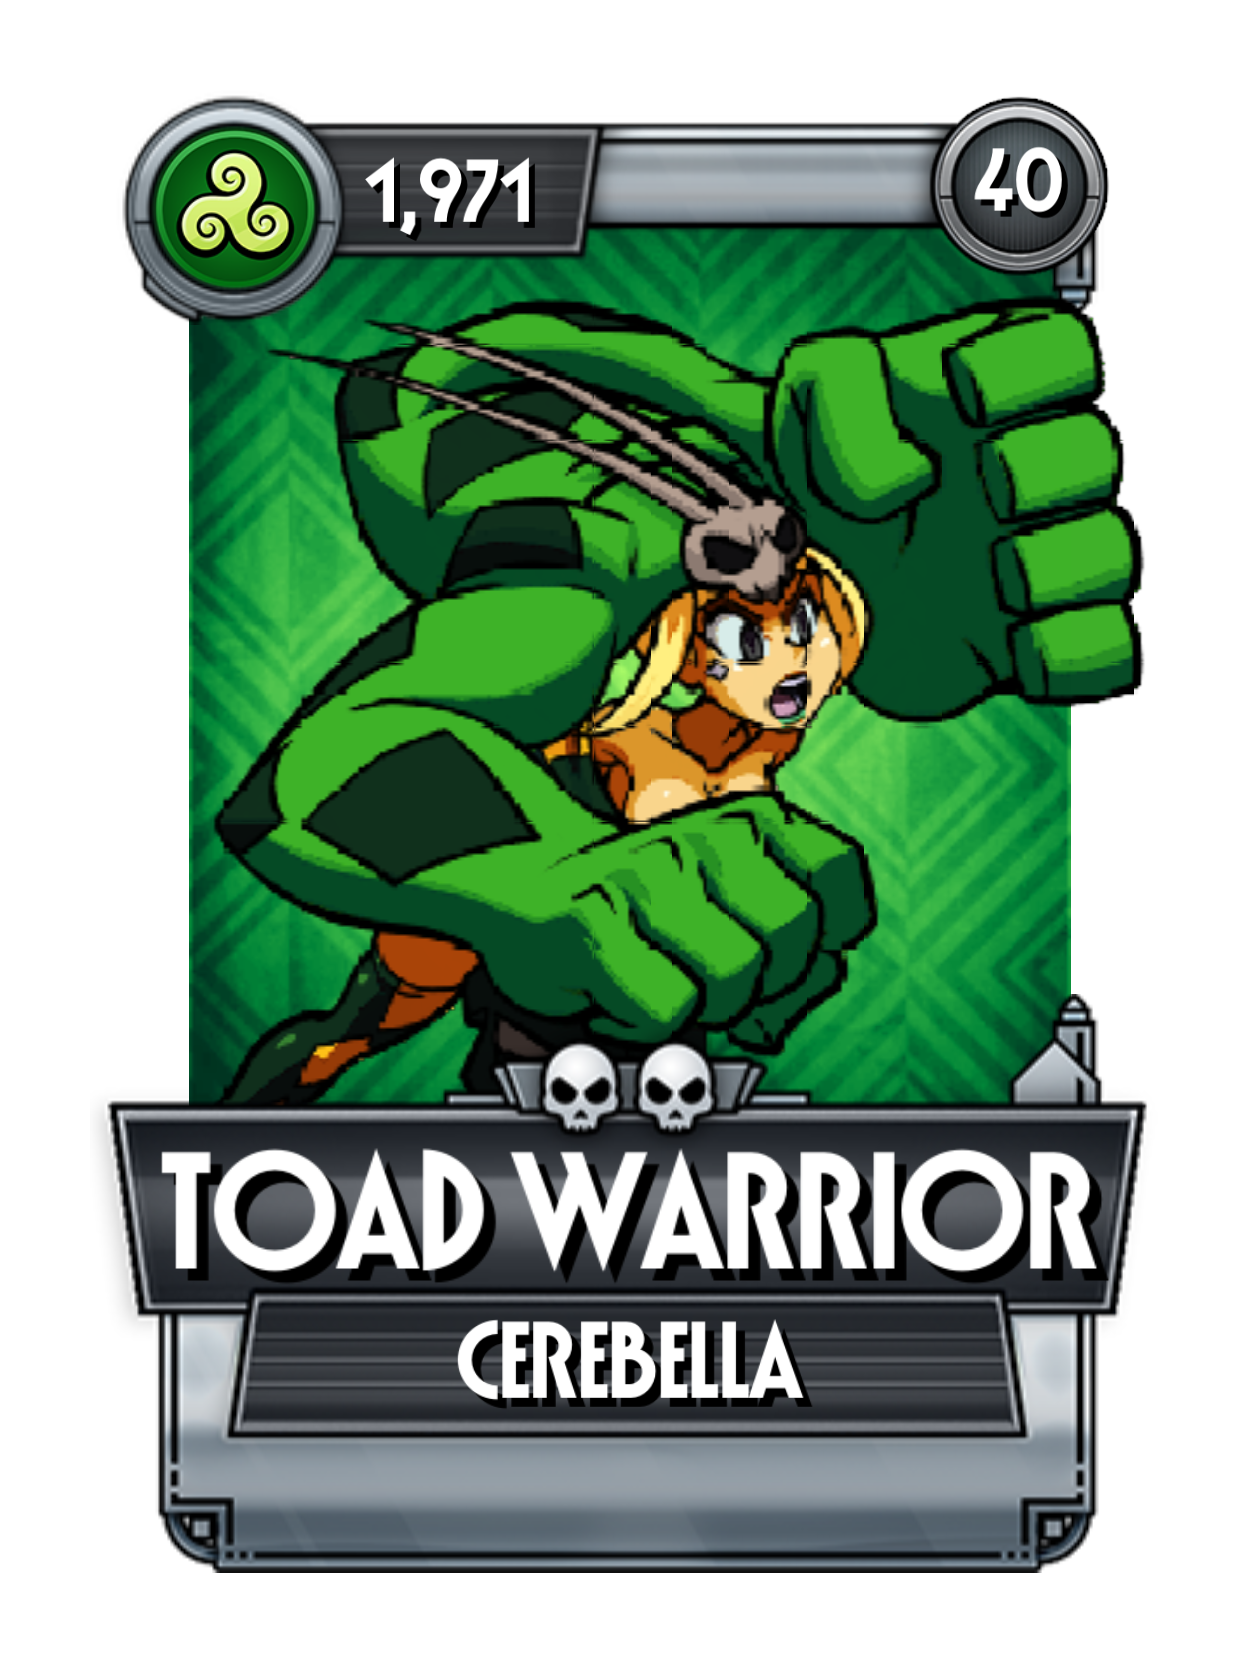 Toad Warrior